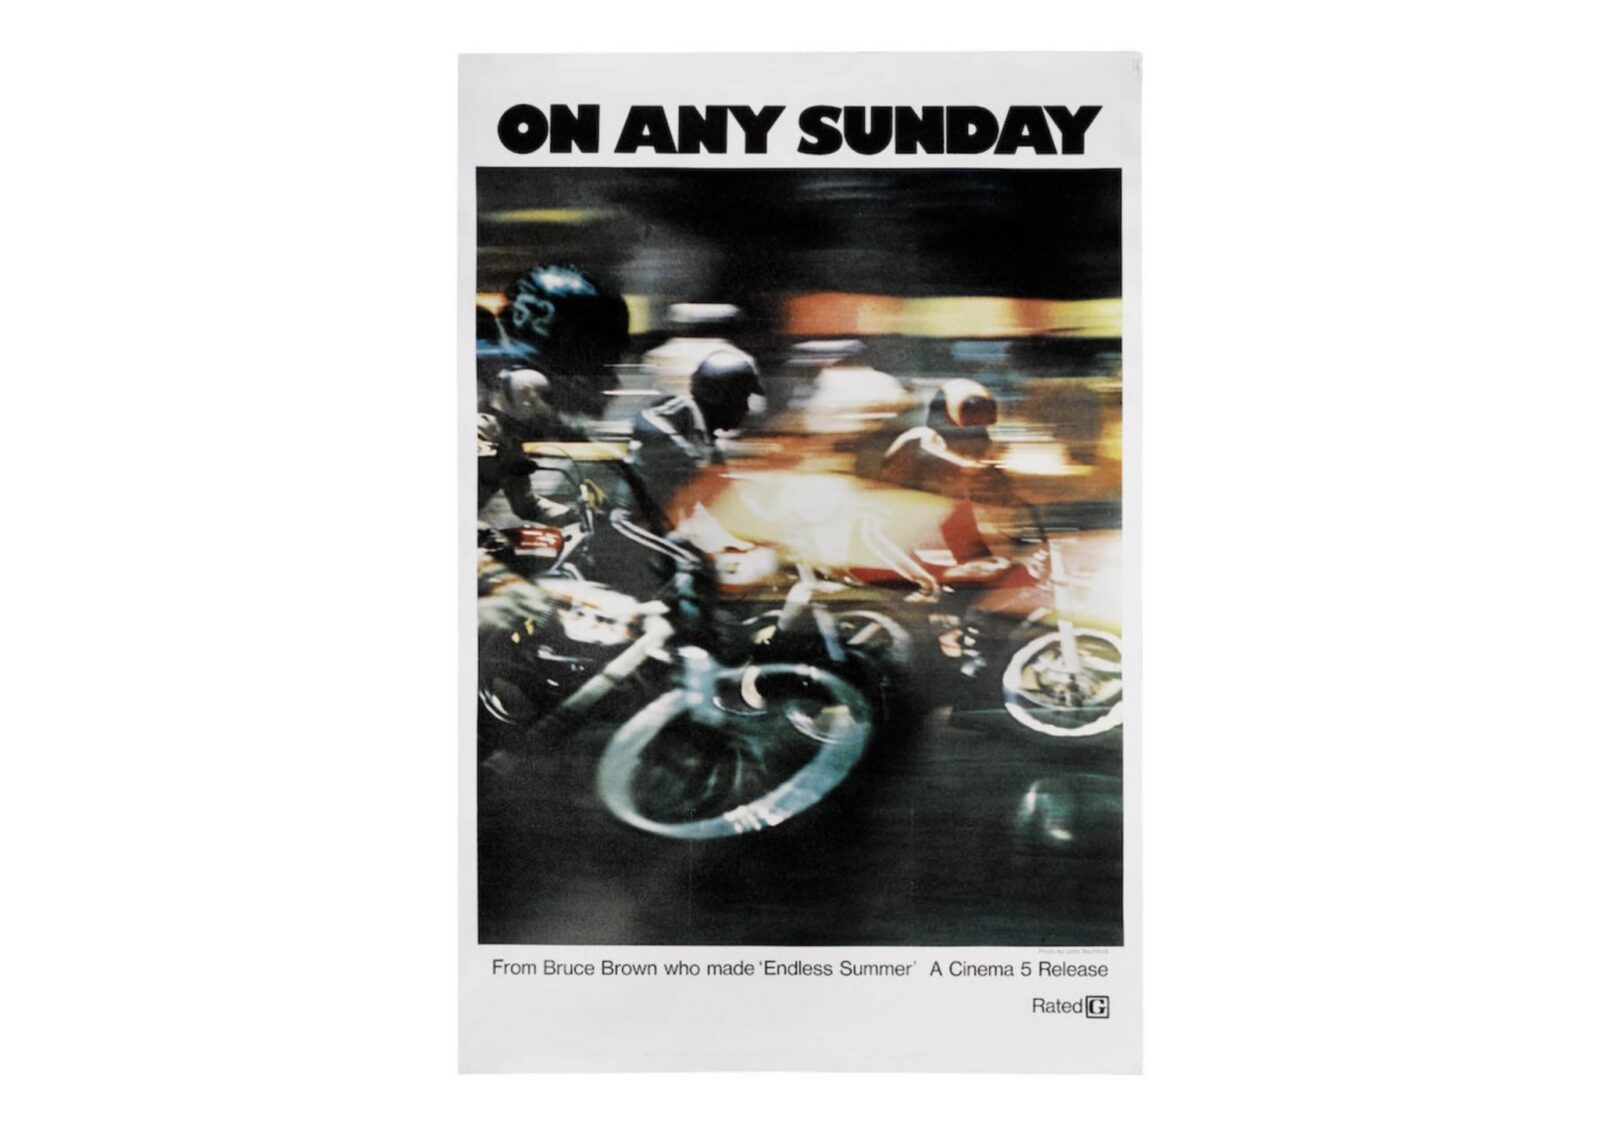 On Any Sunday Promotional Poster 1600x1128 - Original On Any Sunday Promotional Poster